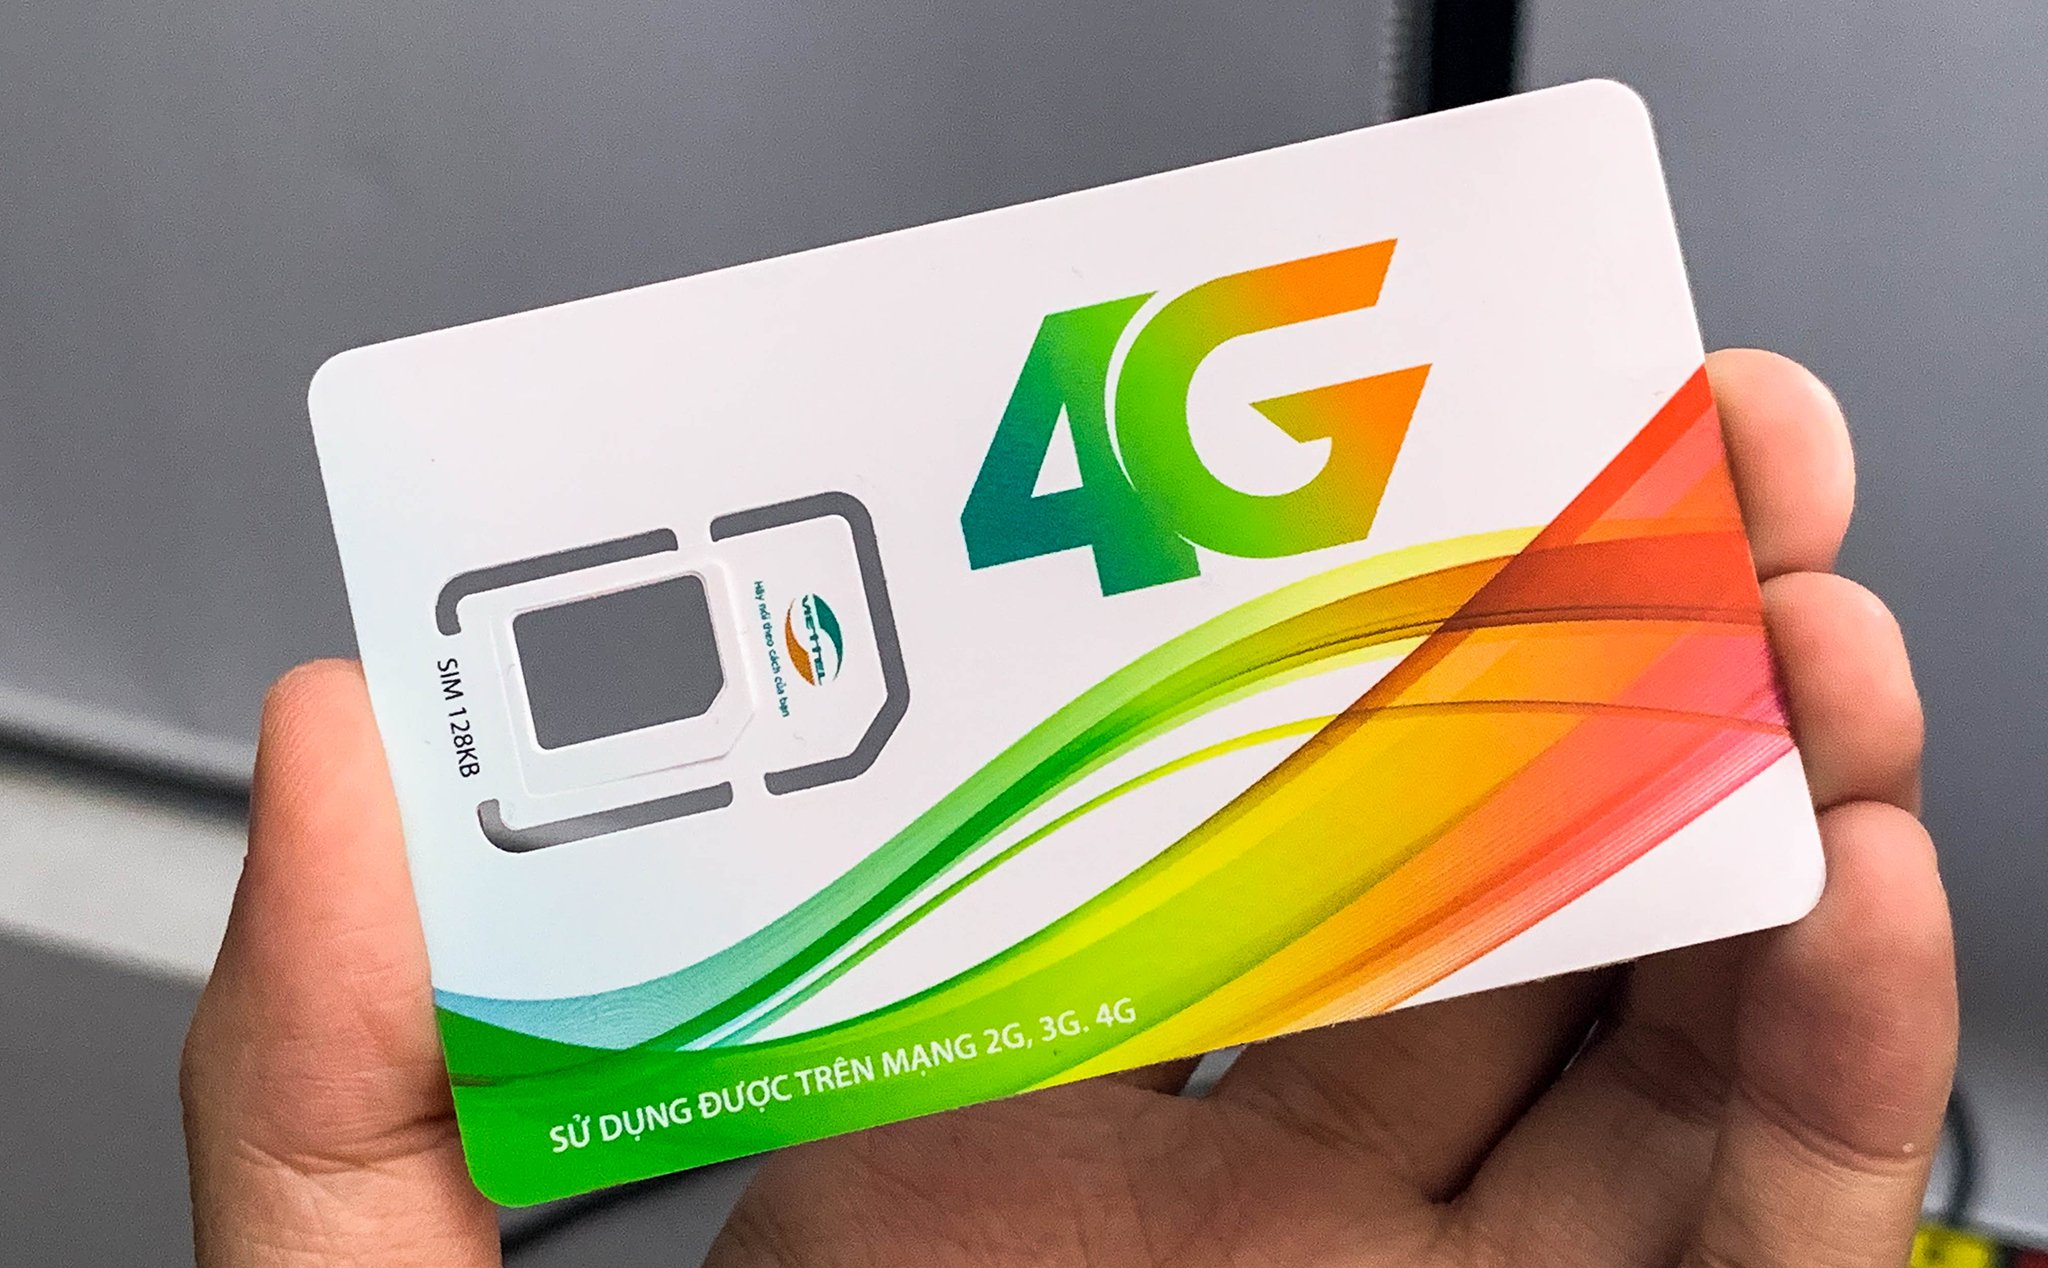 What mobile network are you using? Ask to buy the card code for you